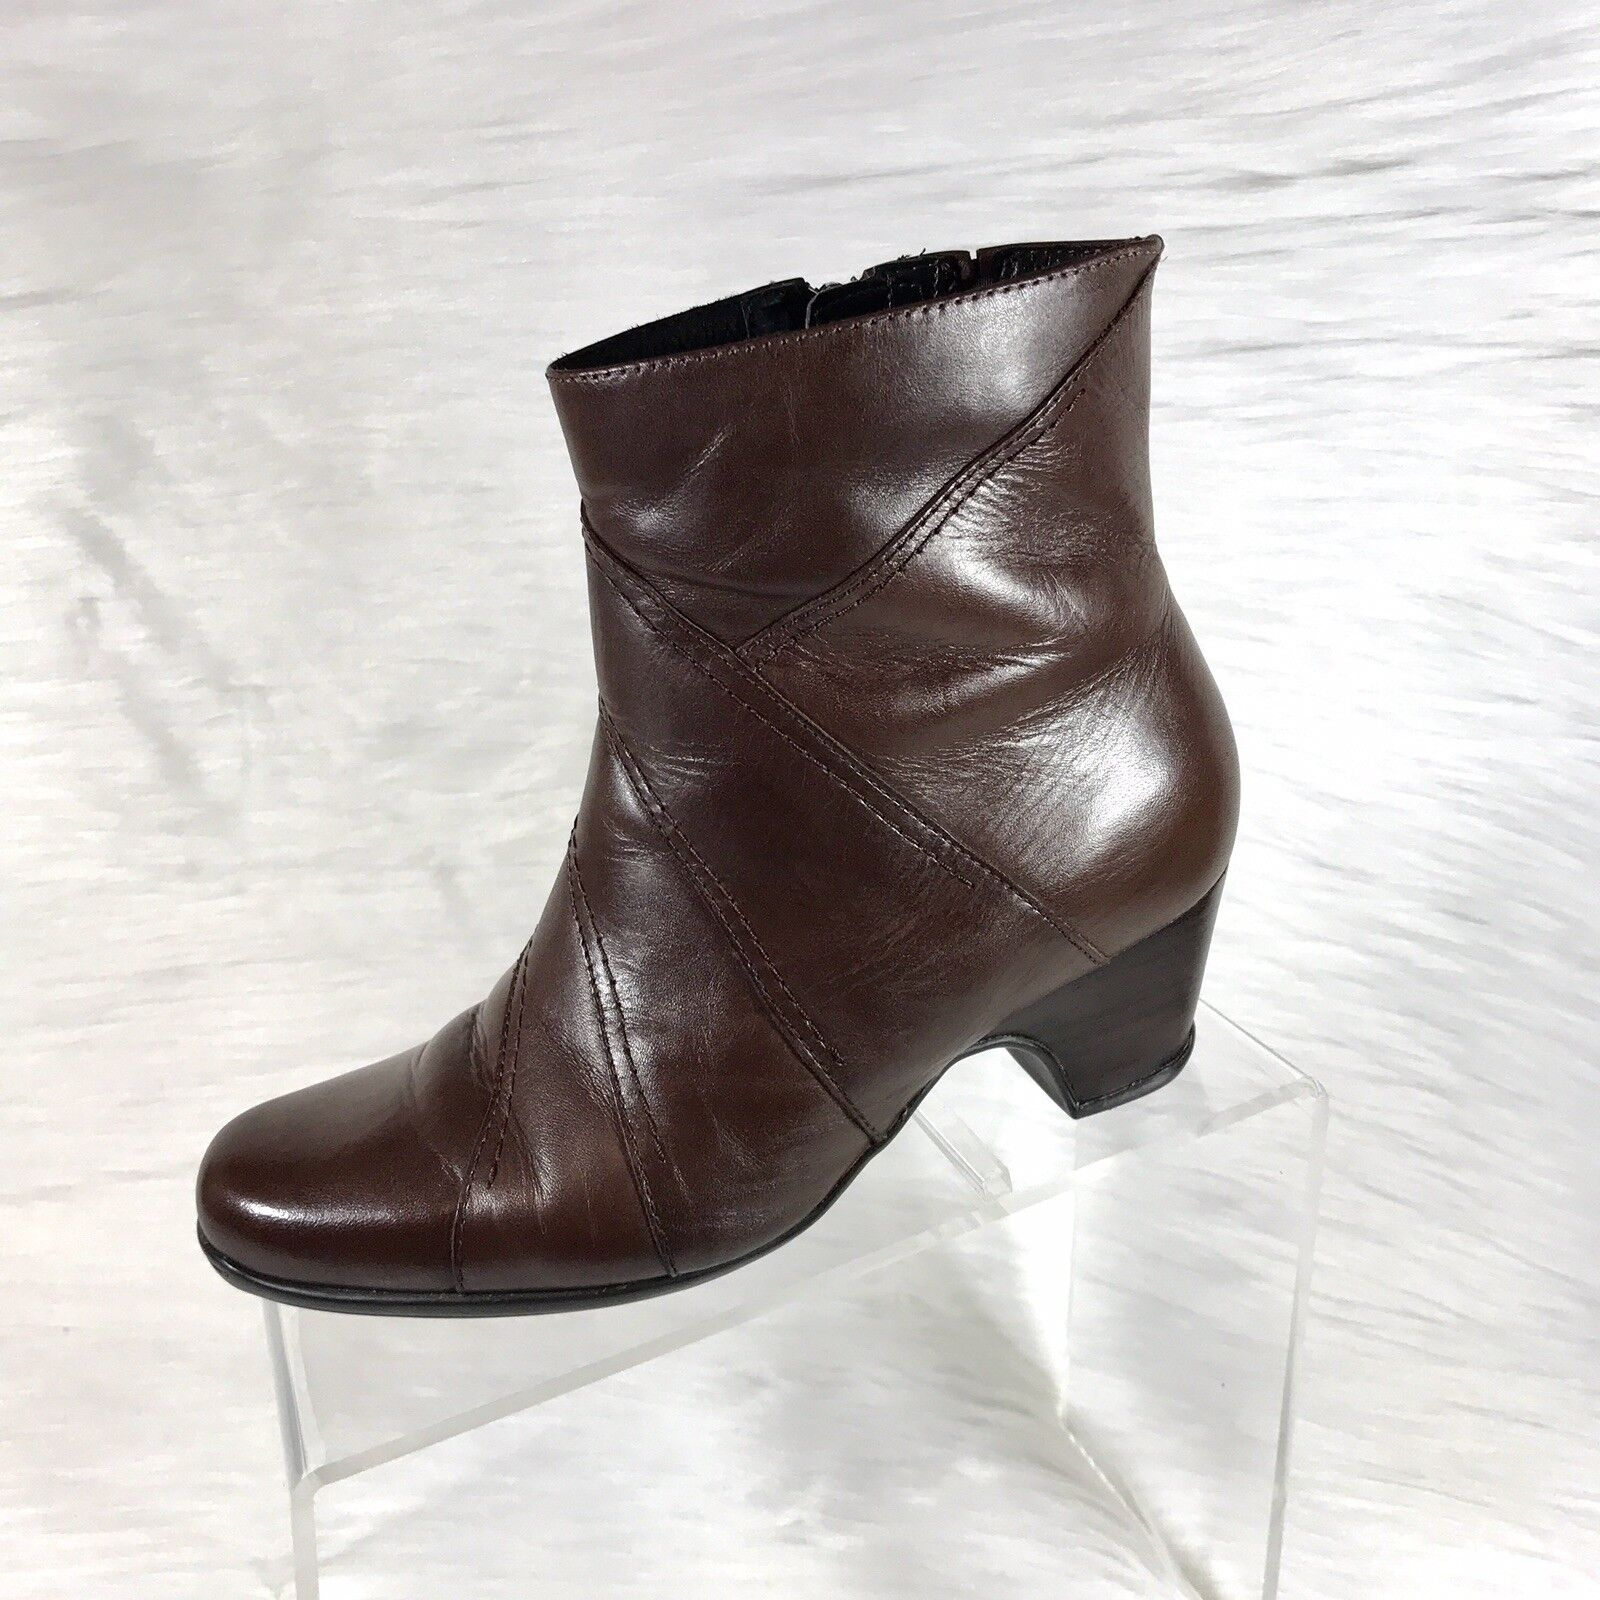 Clarks Artisan Women's Ankle Boots Brown Leather Low Heel Size 7.5 M